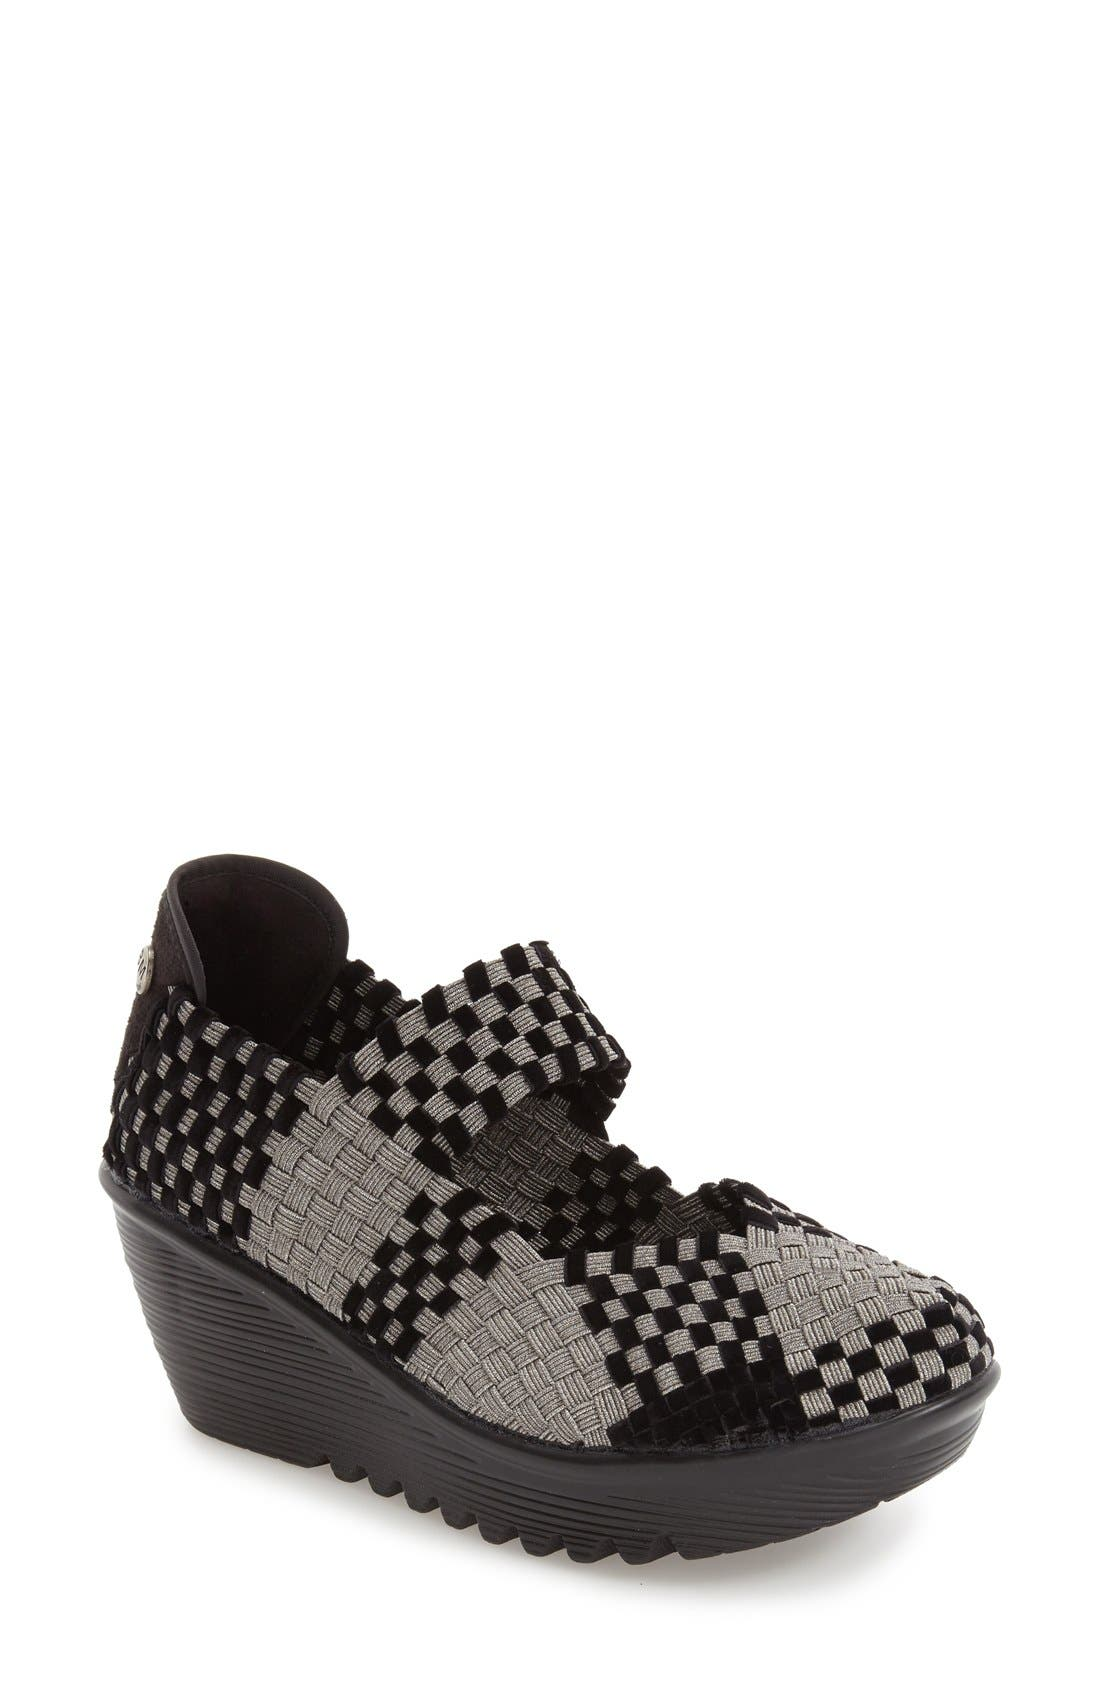 BERNIE MEV. Lulia Woven Mary Jane Platform Wedge